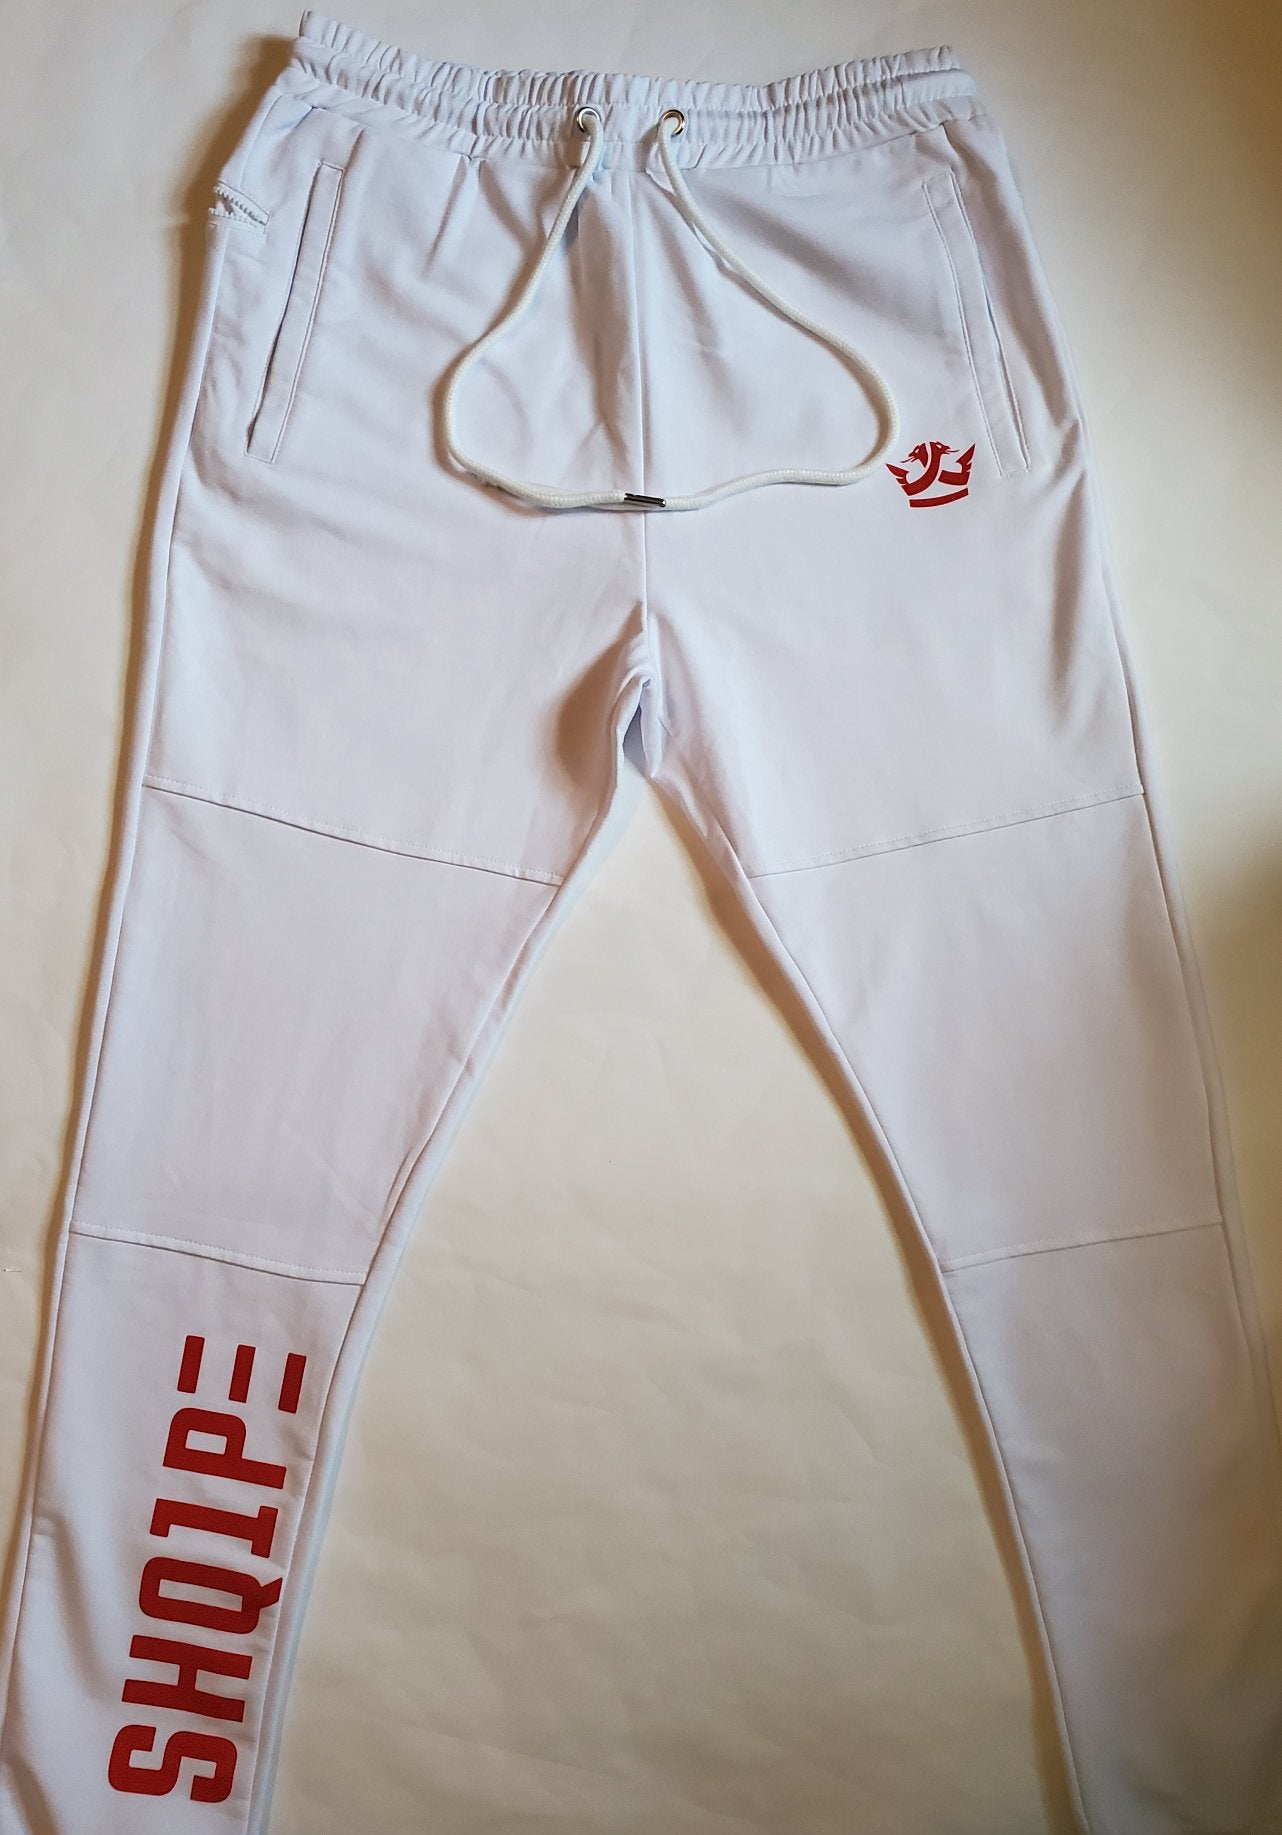 Streetwear full tracksuit - White (Red Logo)